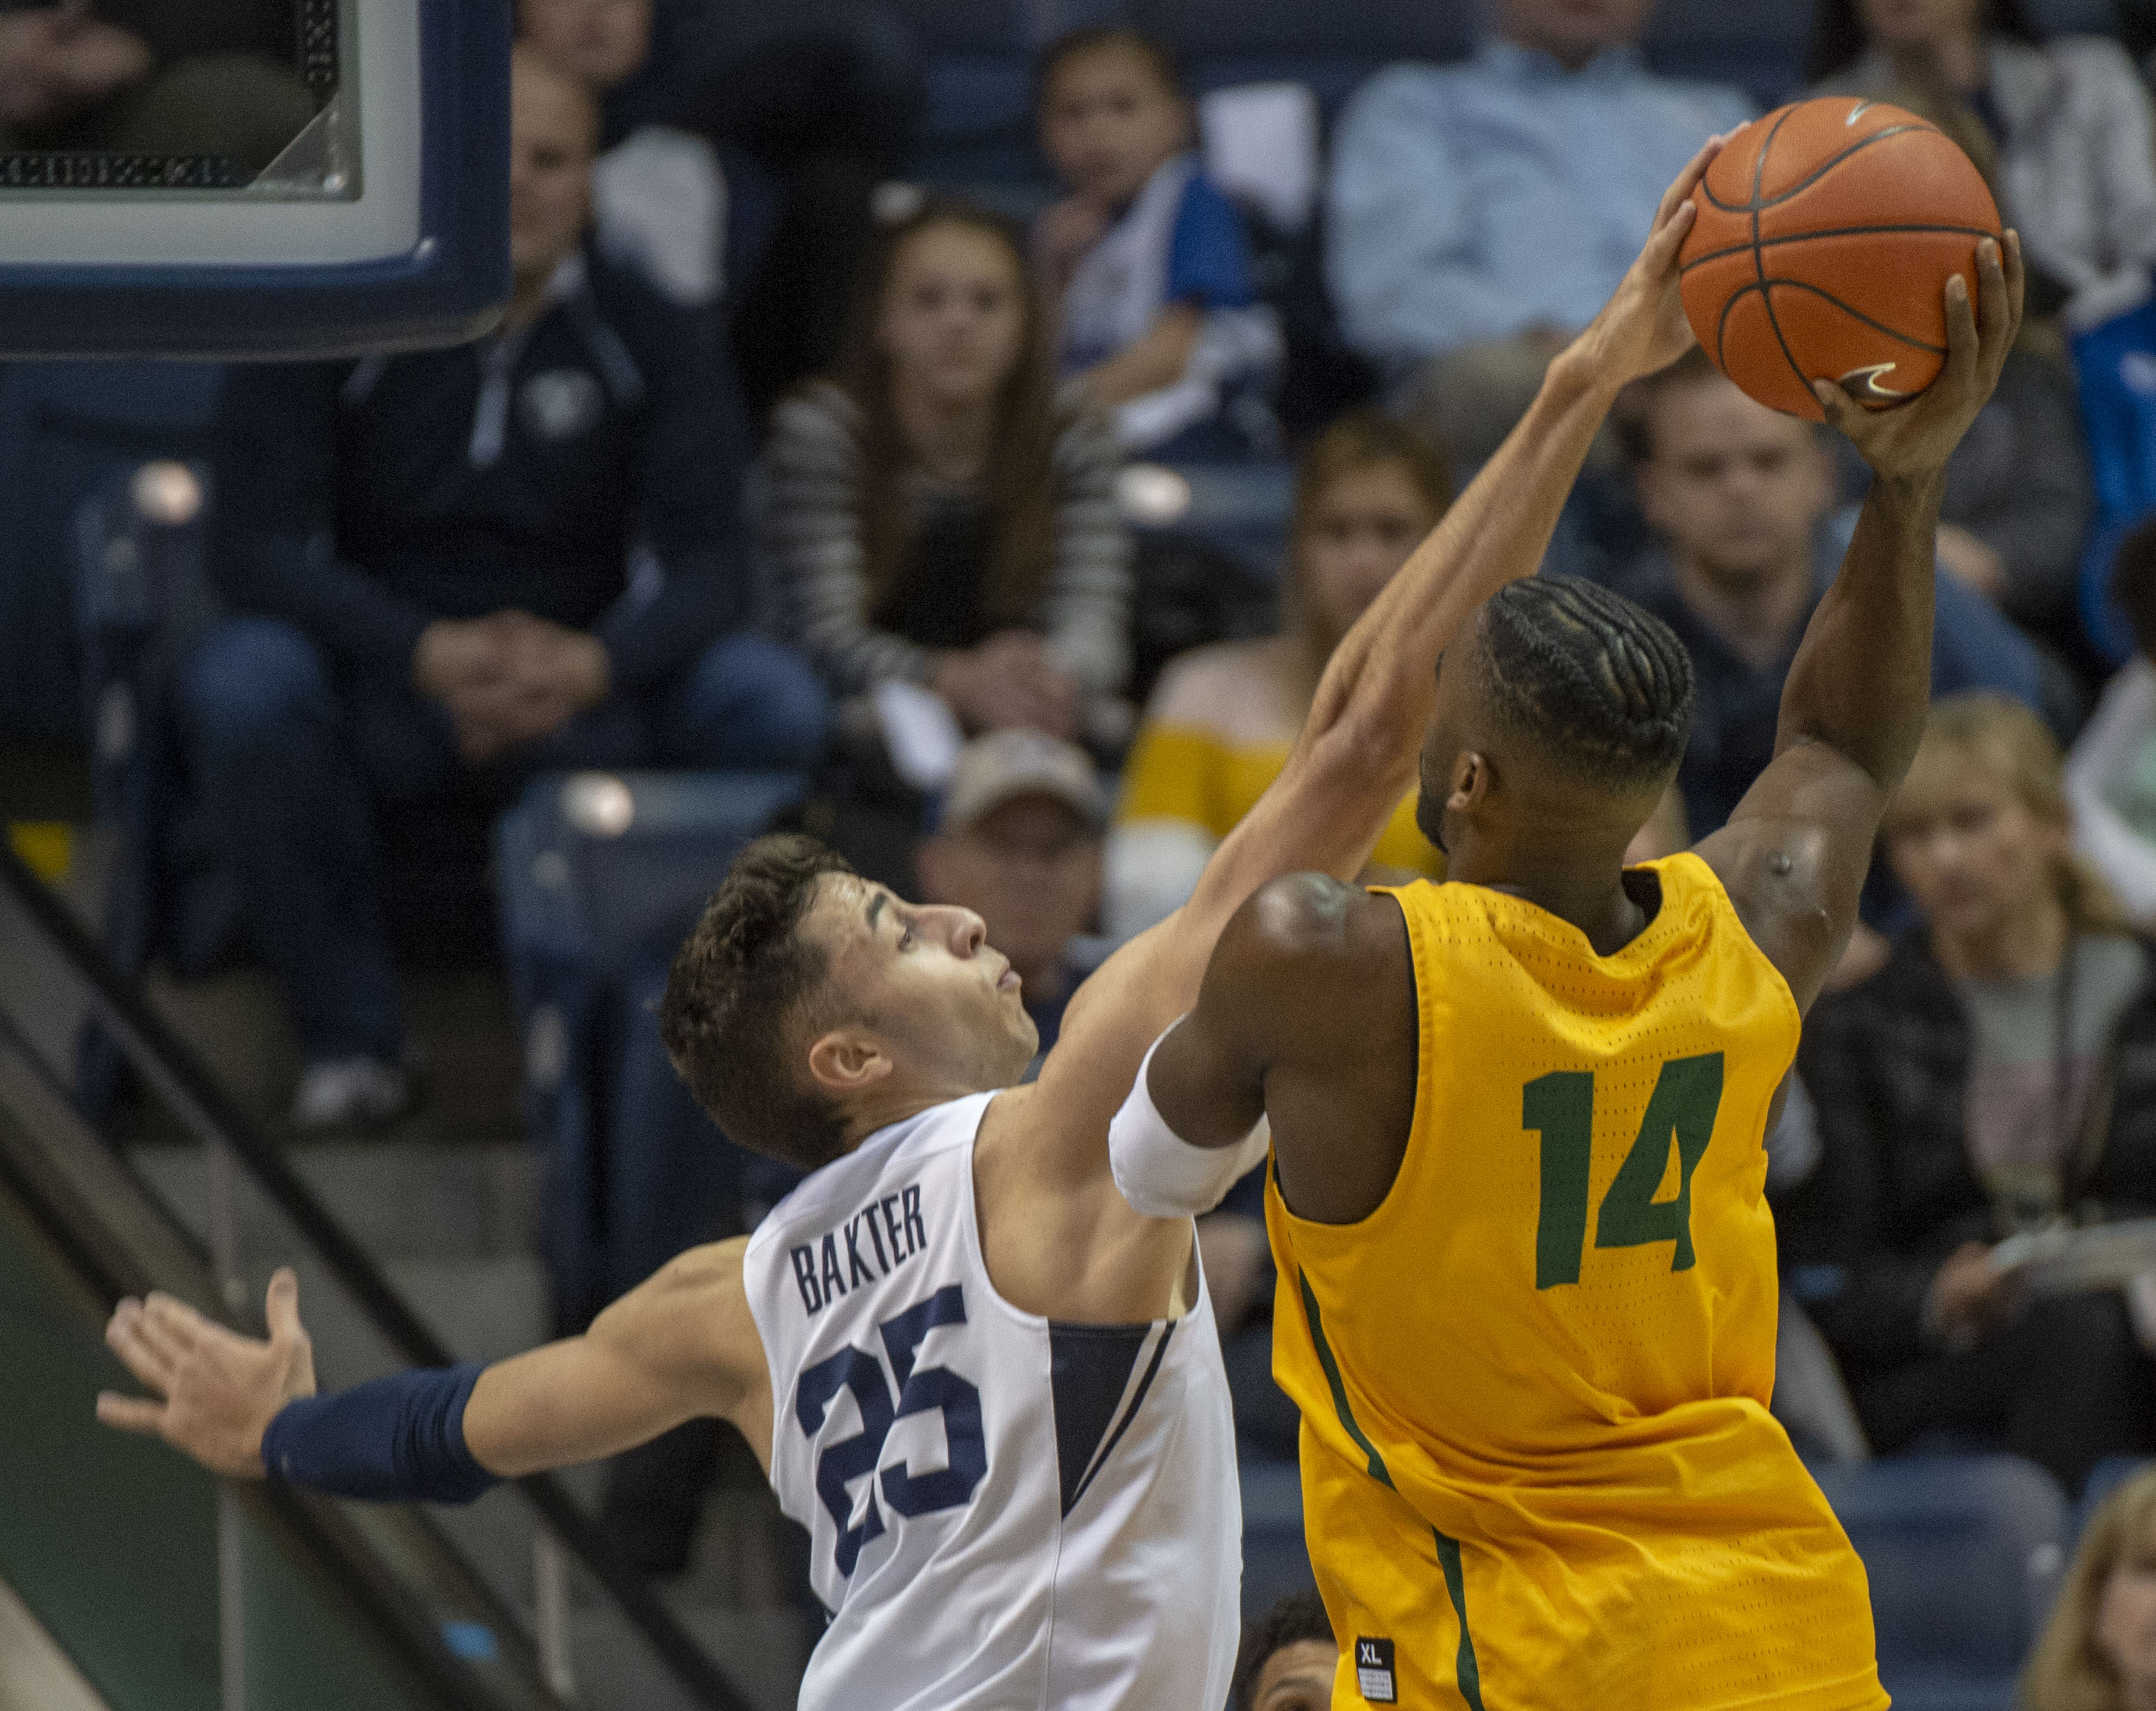 (Rick Egan  |  The Salt Lake Tribune)  Brigham Young Cougars forward Gavin Baxter (25) blocks a shot by San Francisco Dons guard Charles Minlend (14), in WCC basketball action at the Marriott Center, Thursday, February 21, 2018.